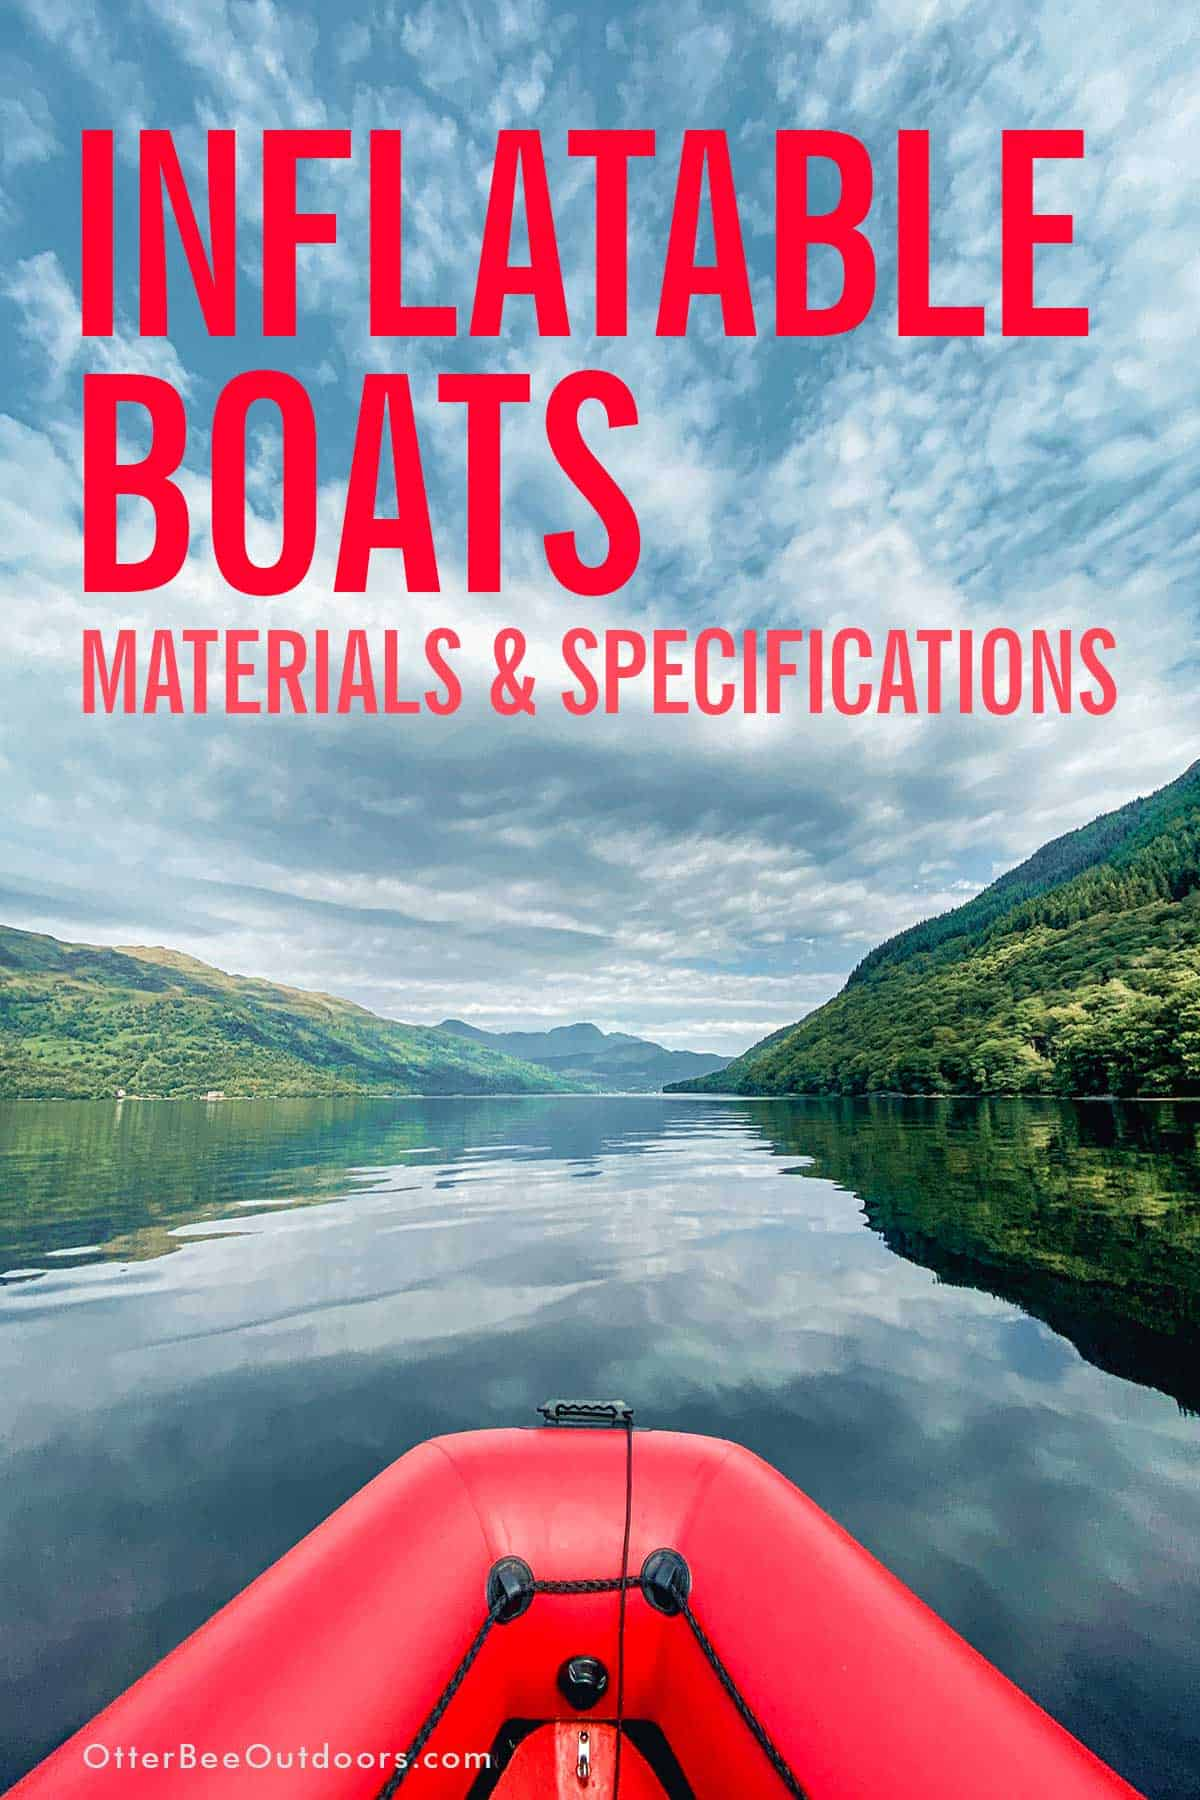 A red, inflatable boat on a calm river surrounded by mountains. The graphic says... Inflatable Boats Materials and Specifications.